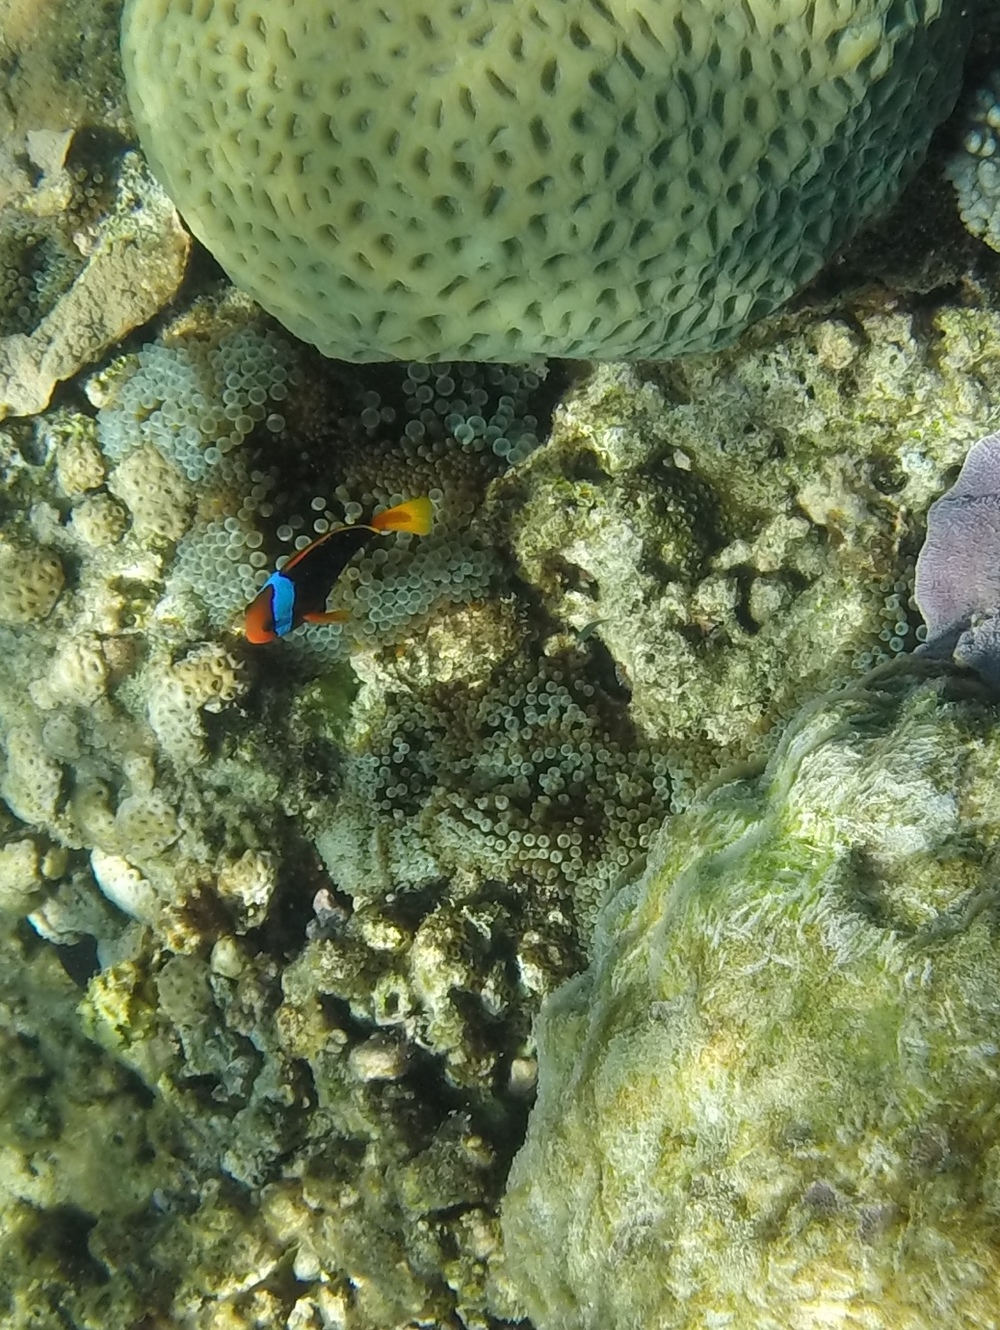 A clownfish on the Great Barrier Reef.